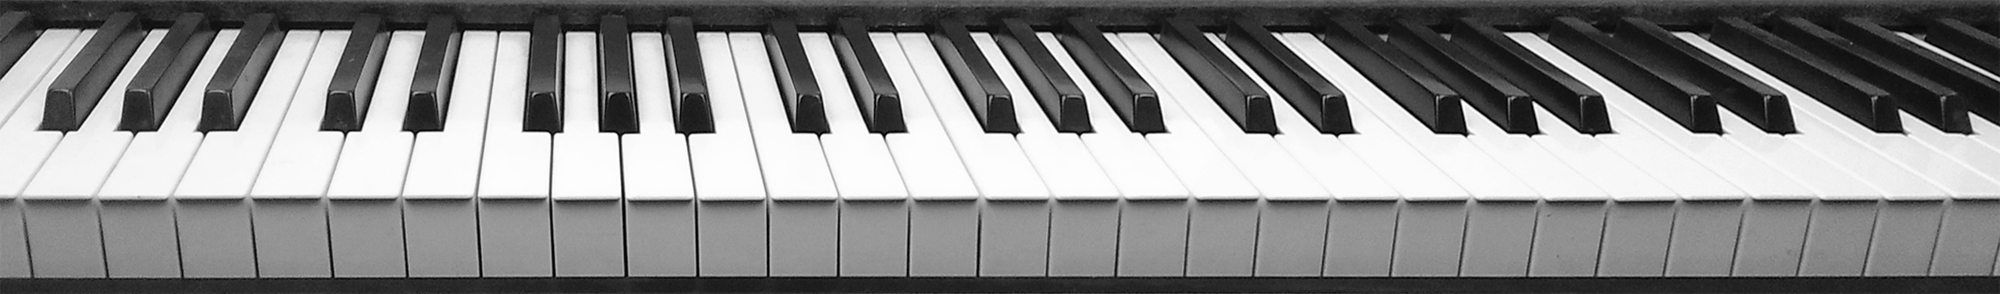 Playing Piano with Chords